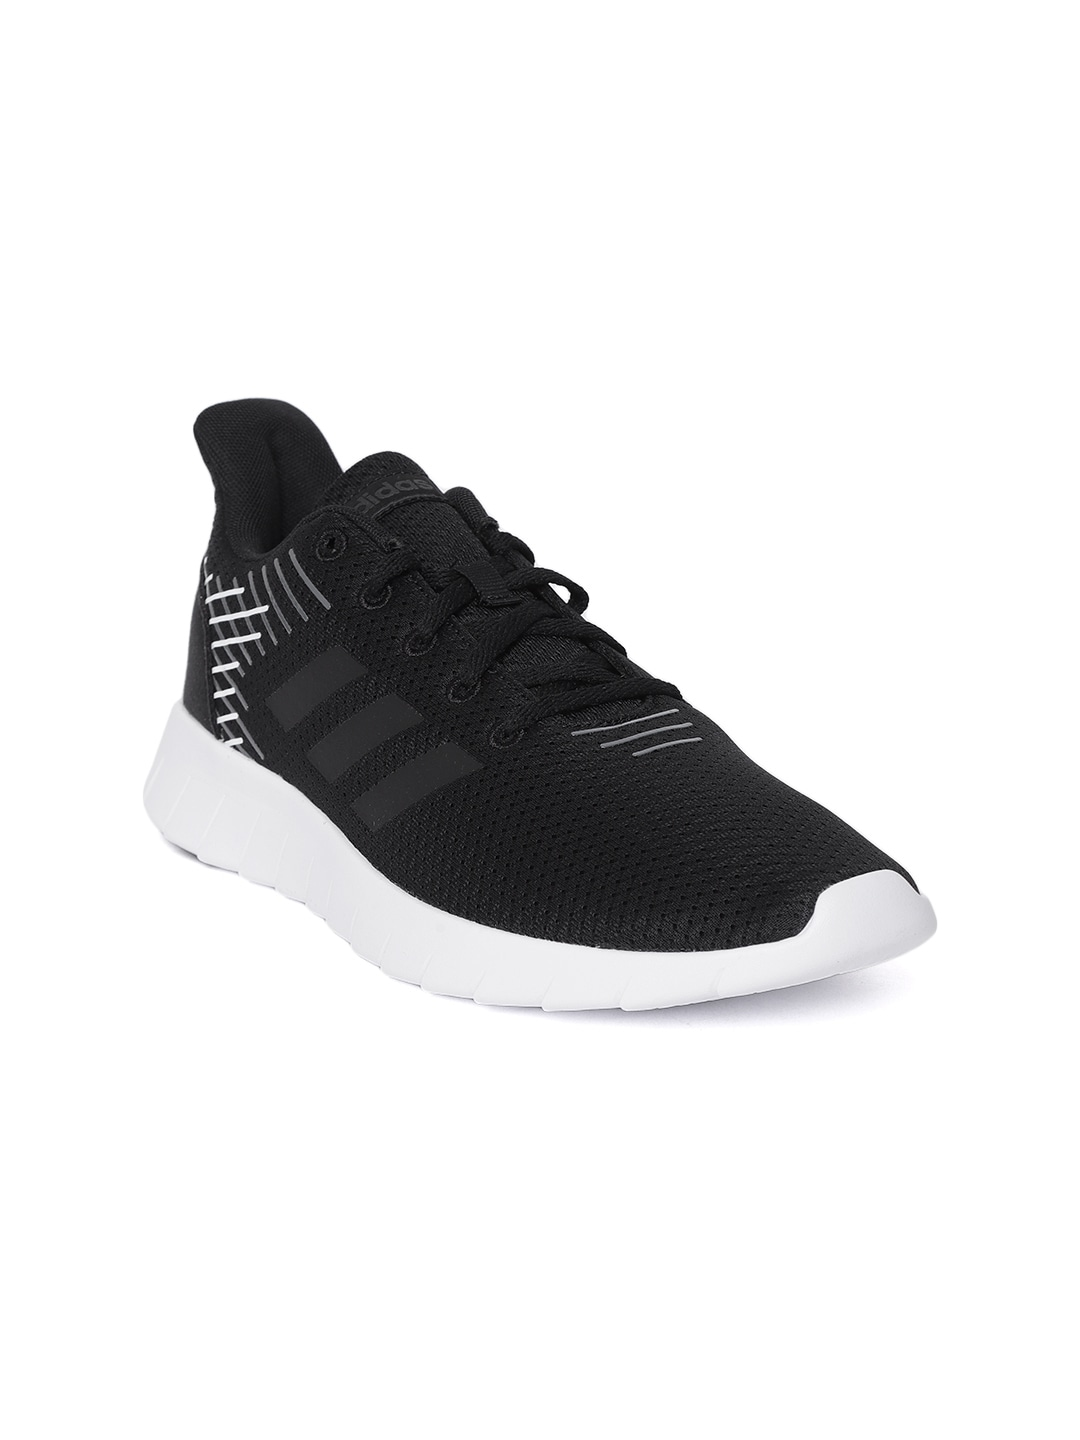 d5d7740128f87 Adidas White Shoes - Buy Adidas White Shoes Online in India